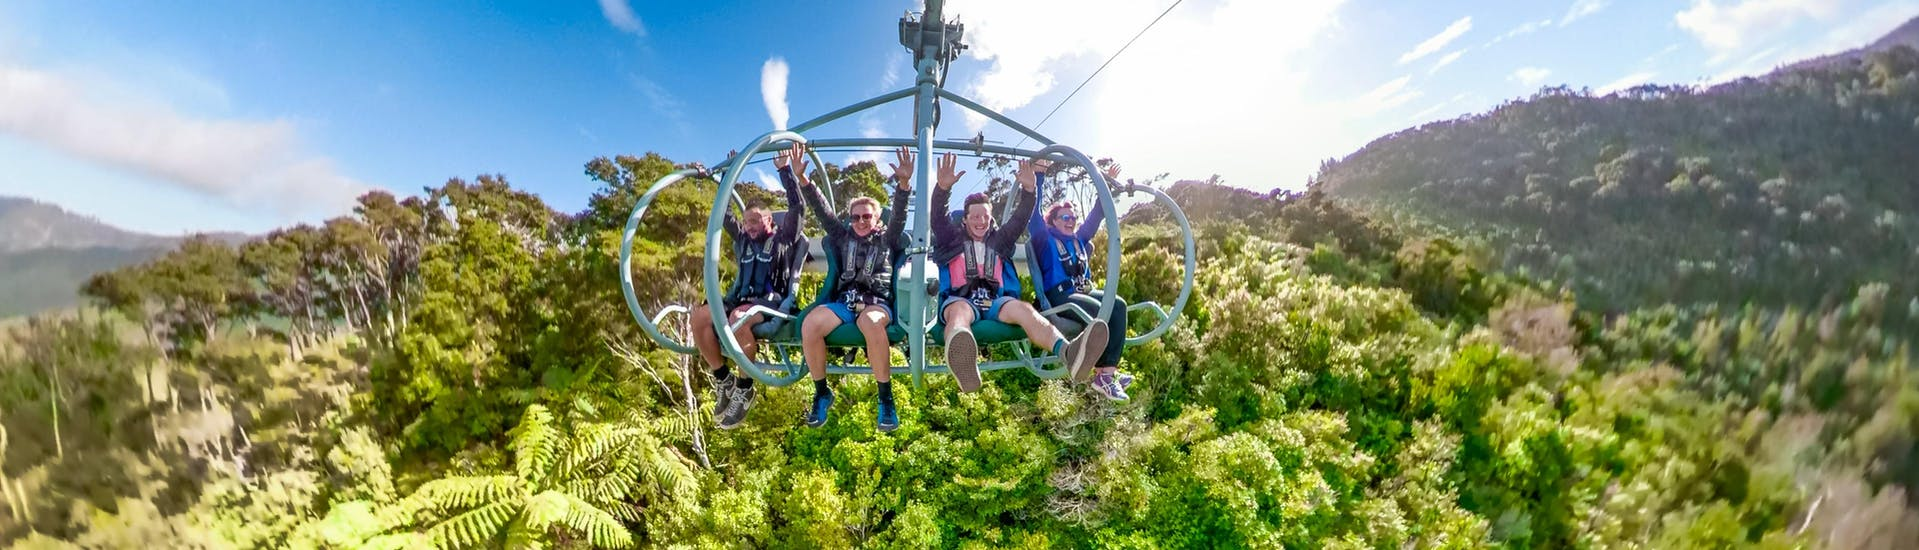 nelson-zipline-skywire-experience-cable-bay-adventure-park-nelson-hero